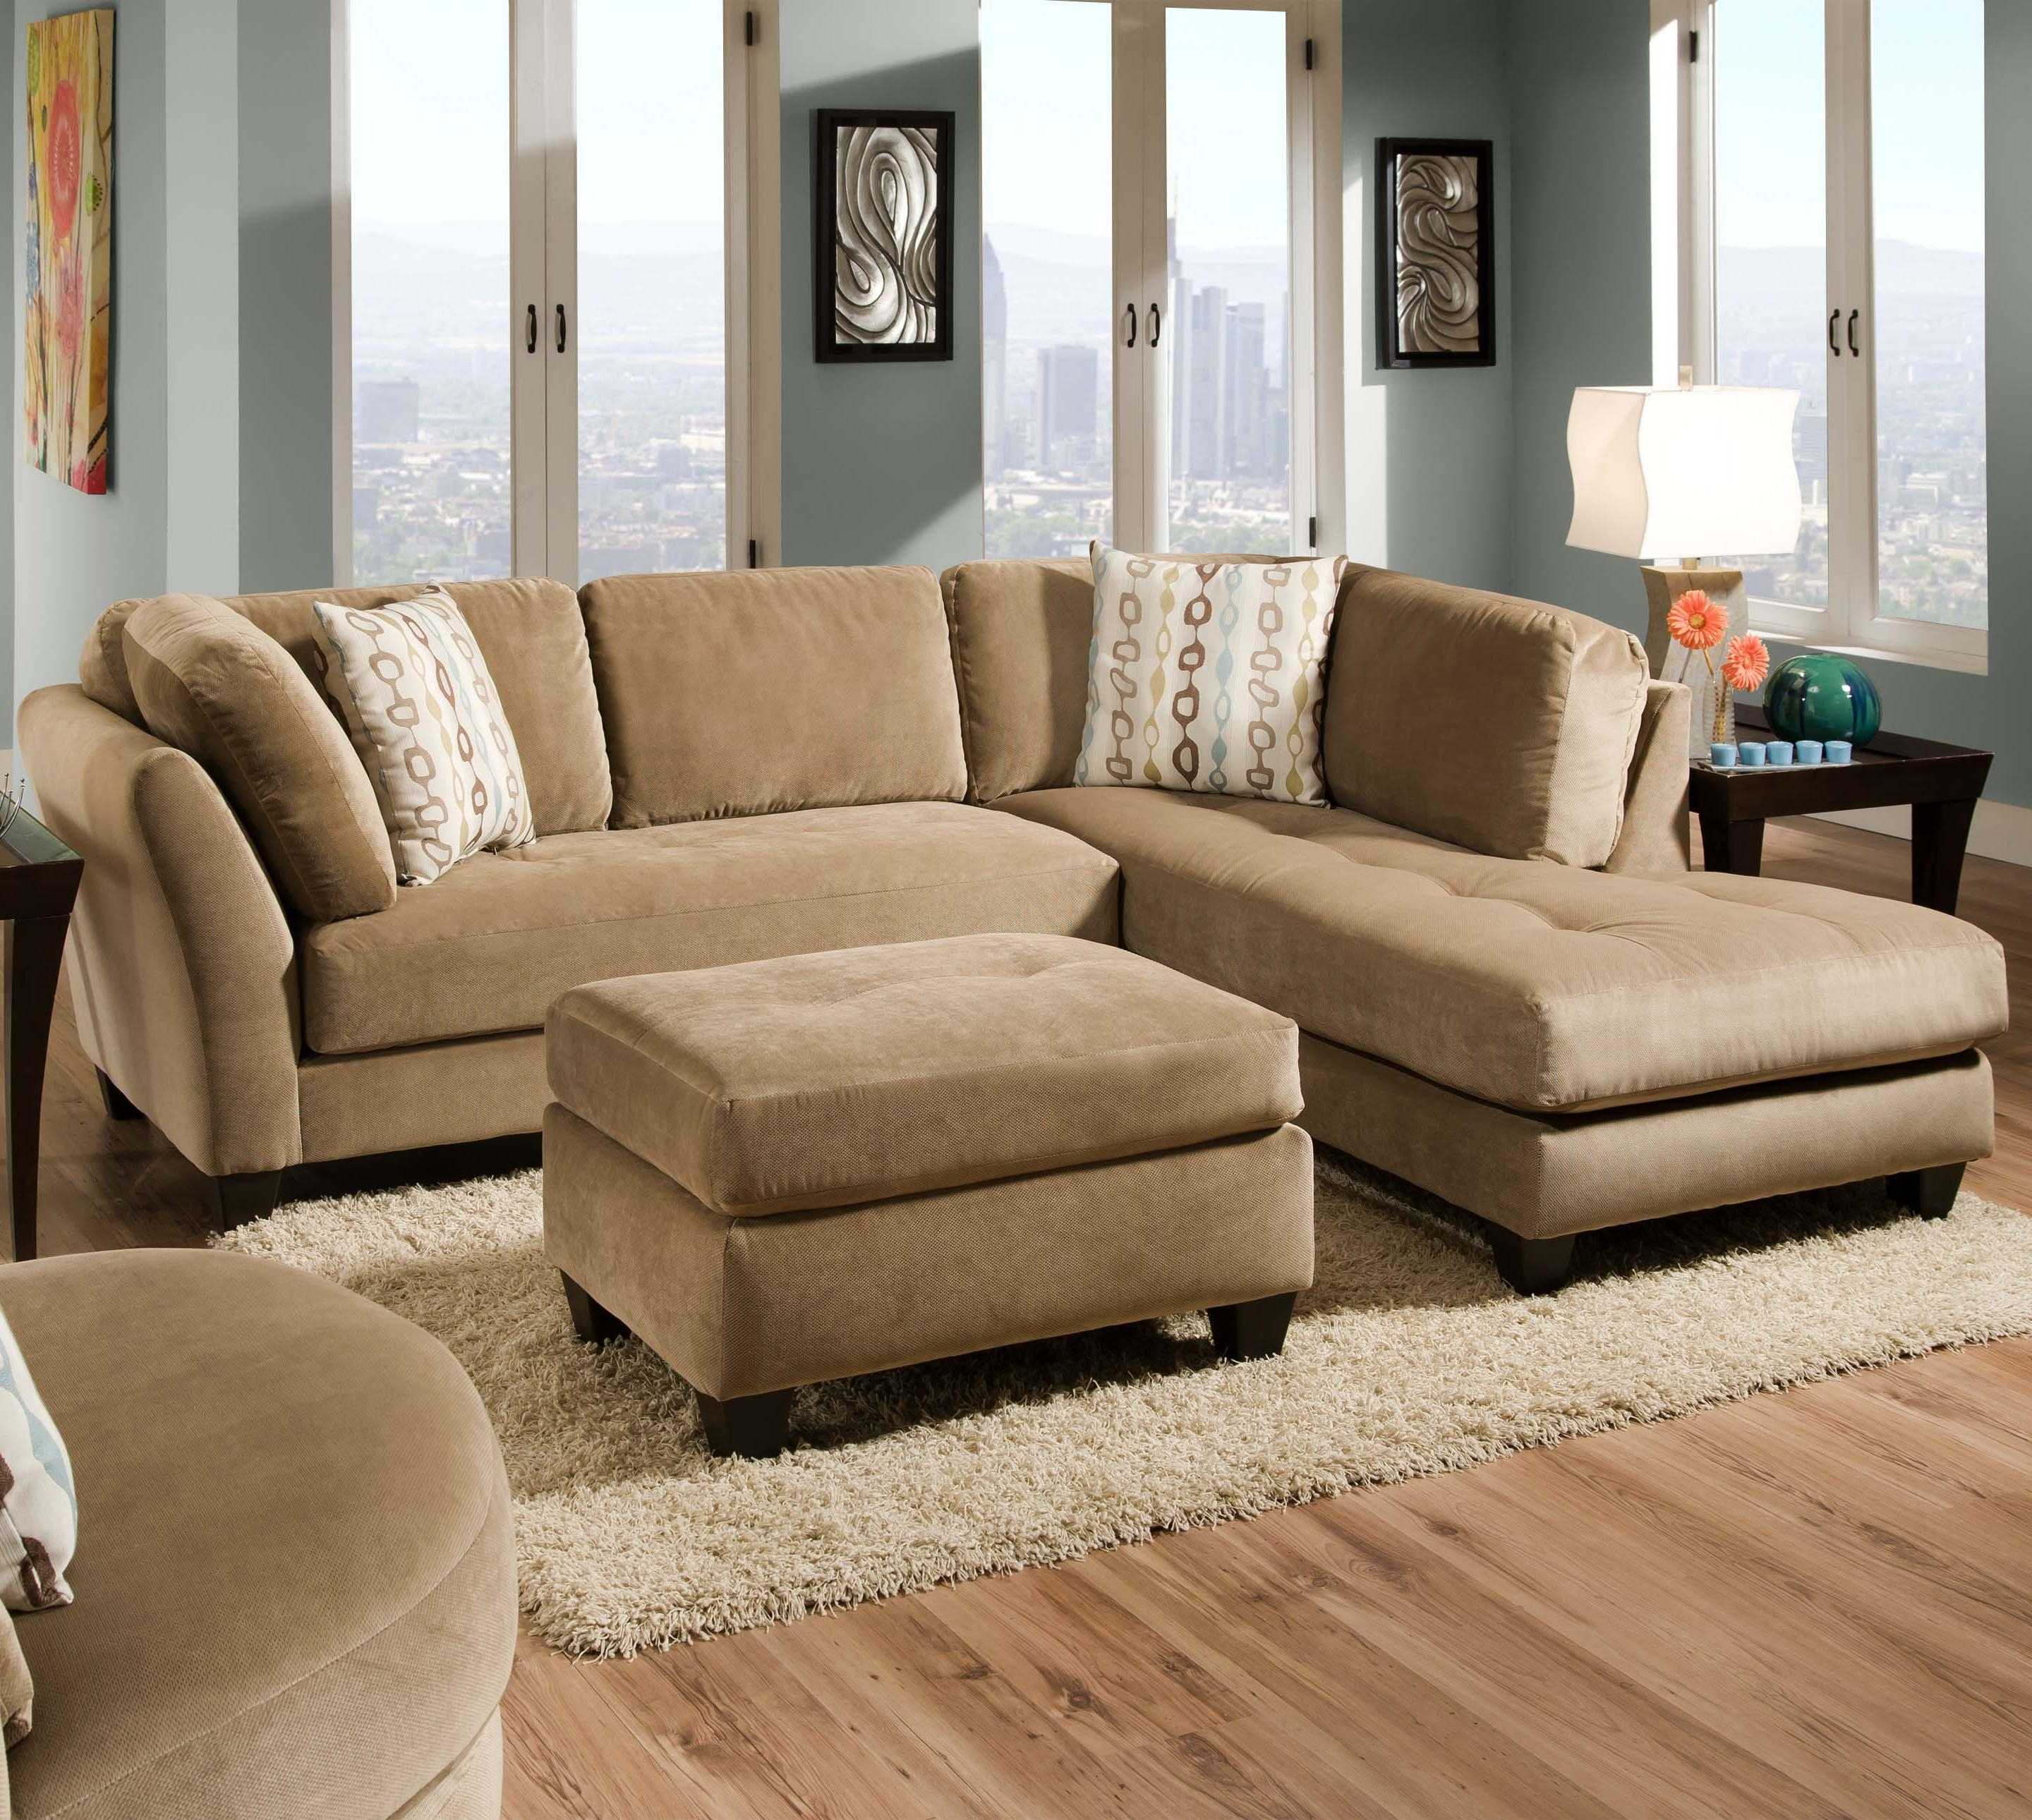 35B Slugger Mocha 2 Piece Sectionalcorinthian – Great American Regarding Memphis Tn Sectional Sofas (View 4 of 10)